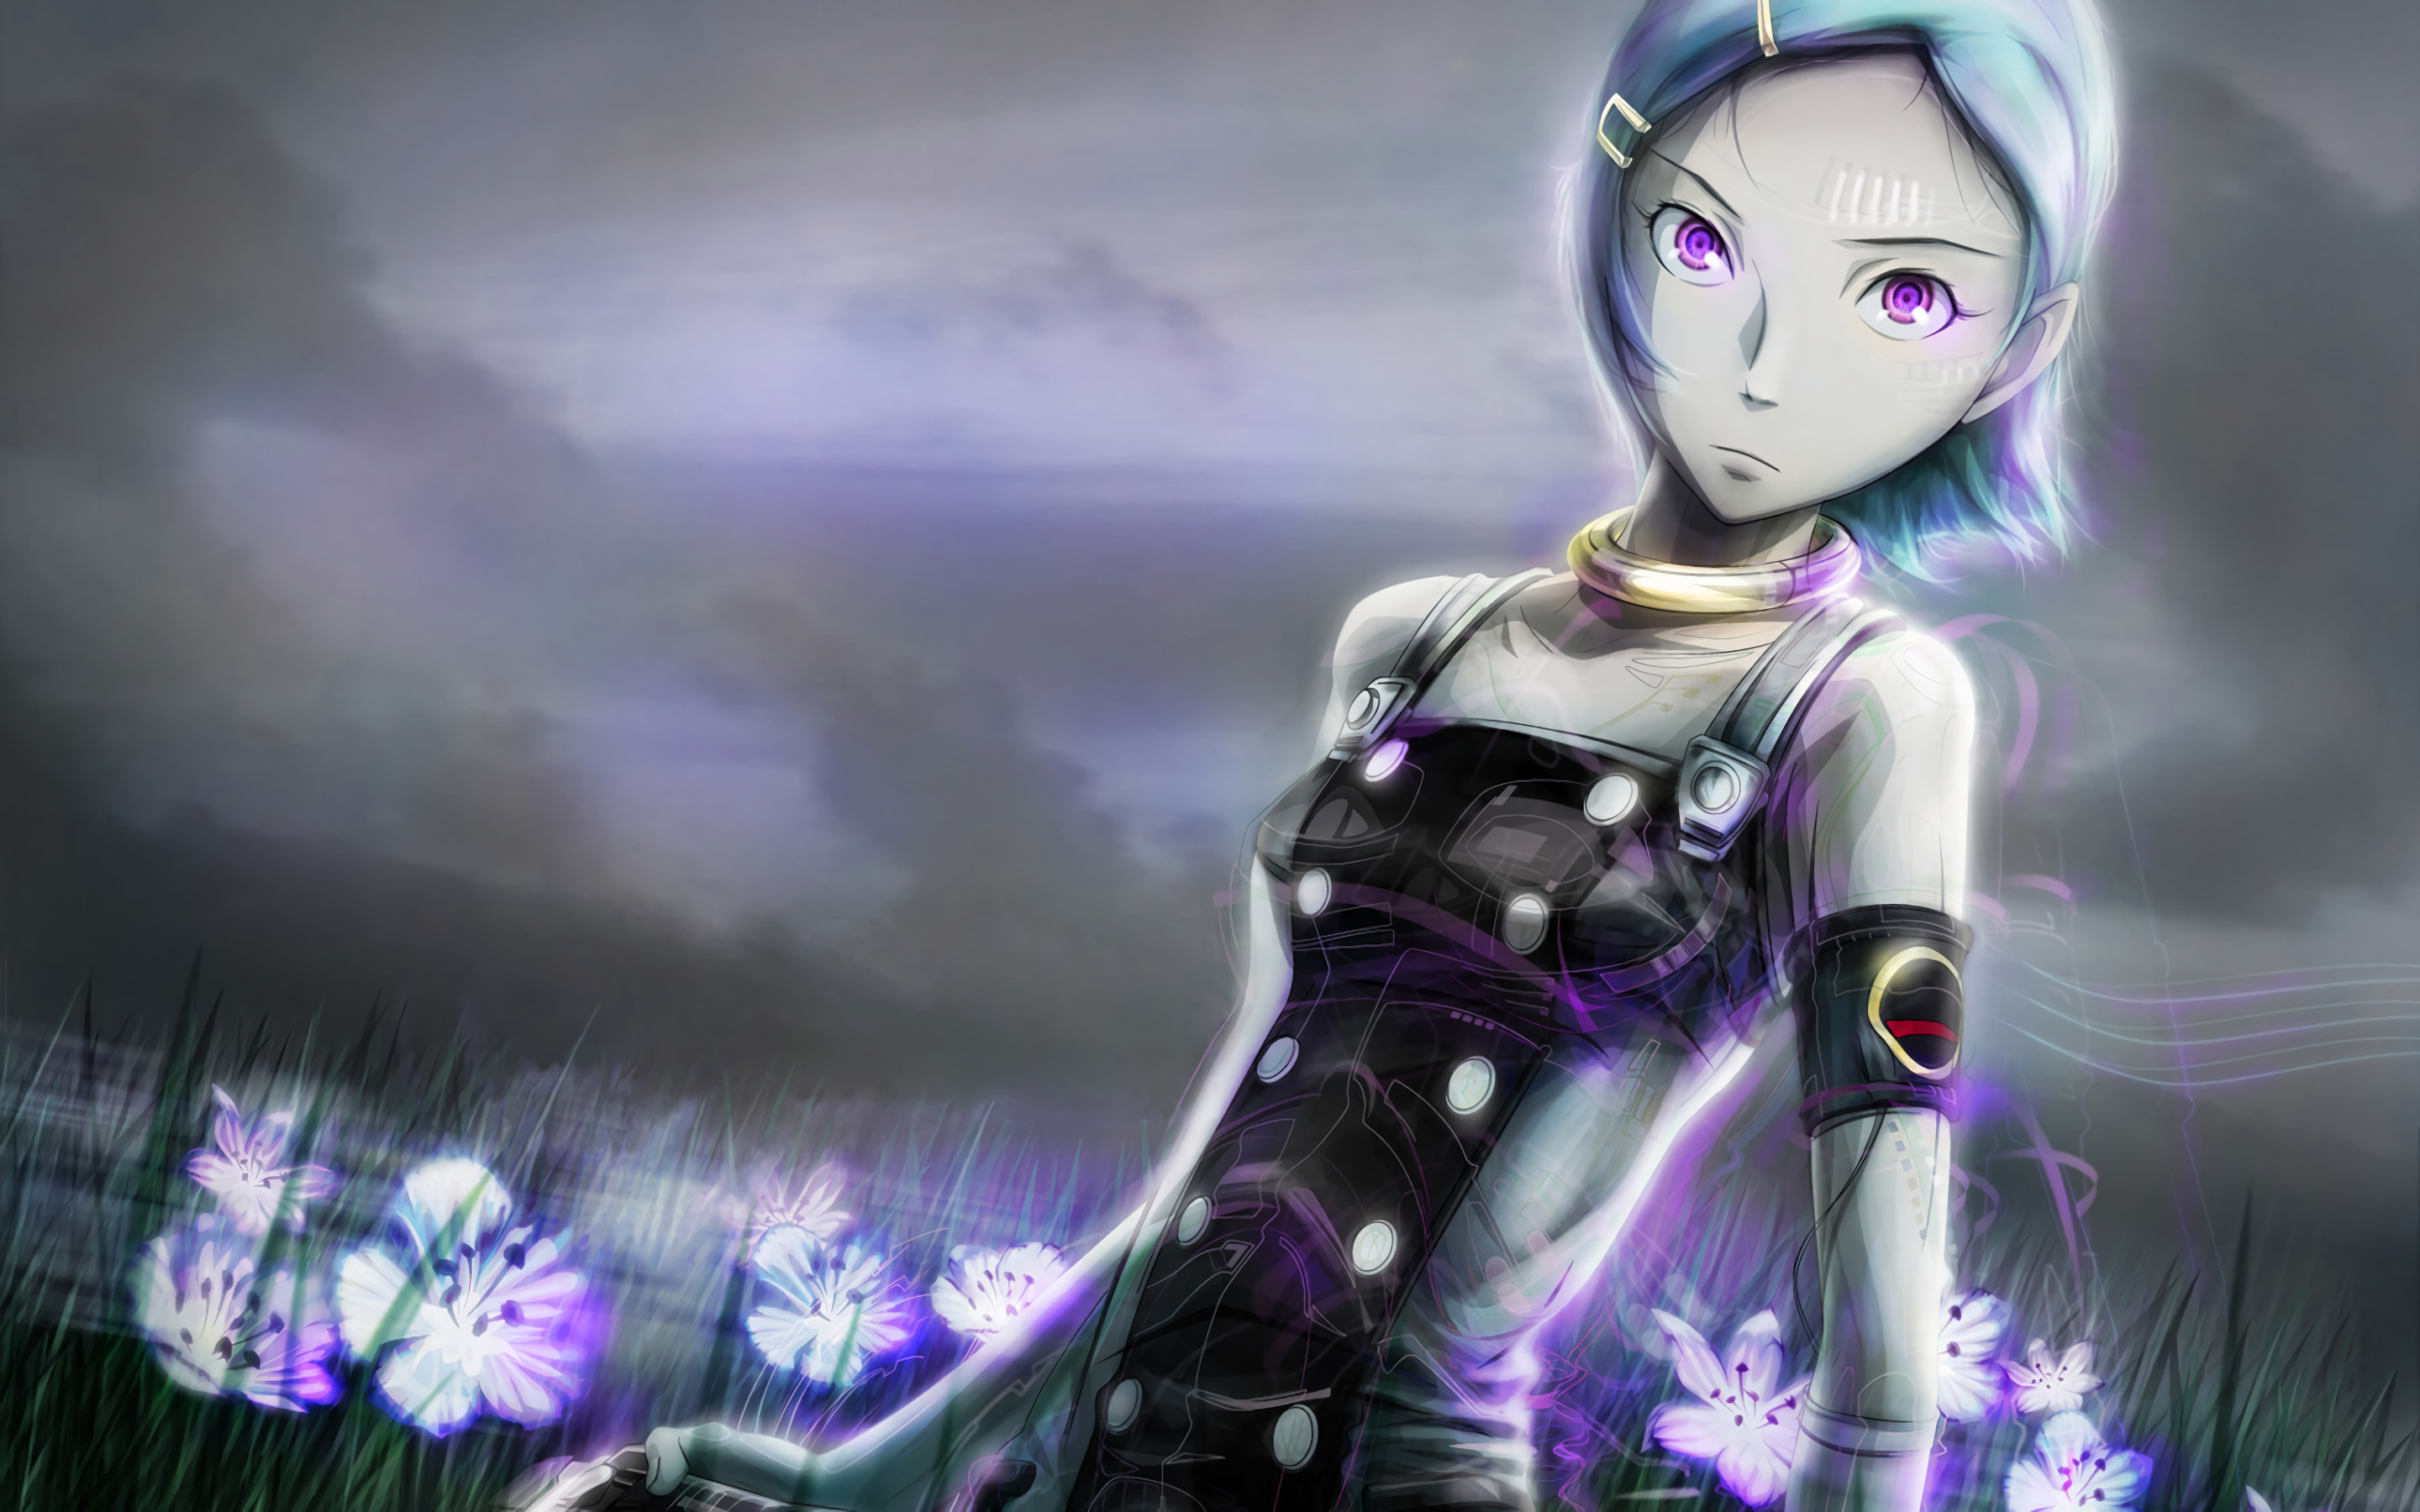 Res: 2880x1800, HD Wallpaper | Background Image ID:73320.  Anime Eureka Seven